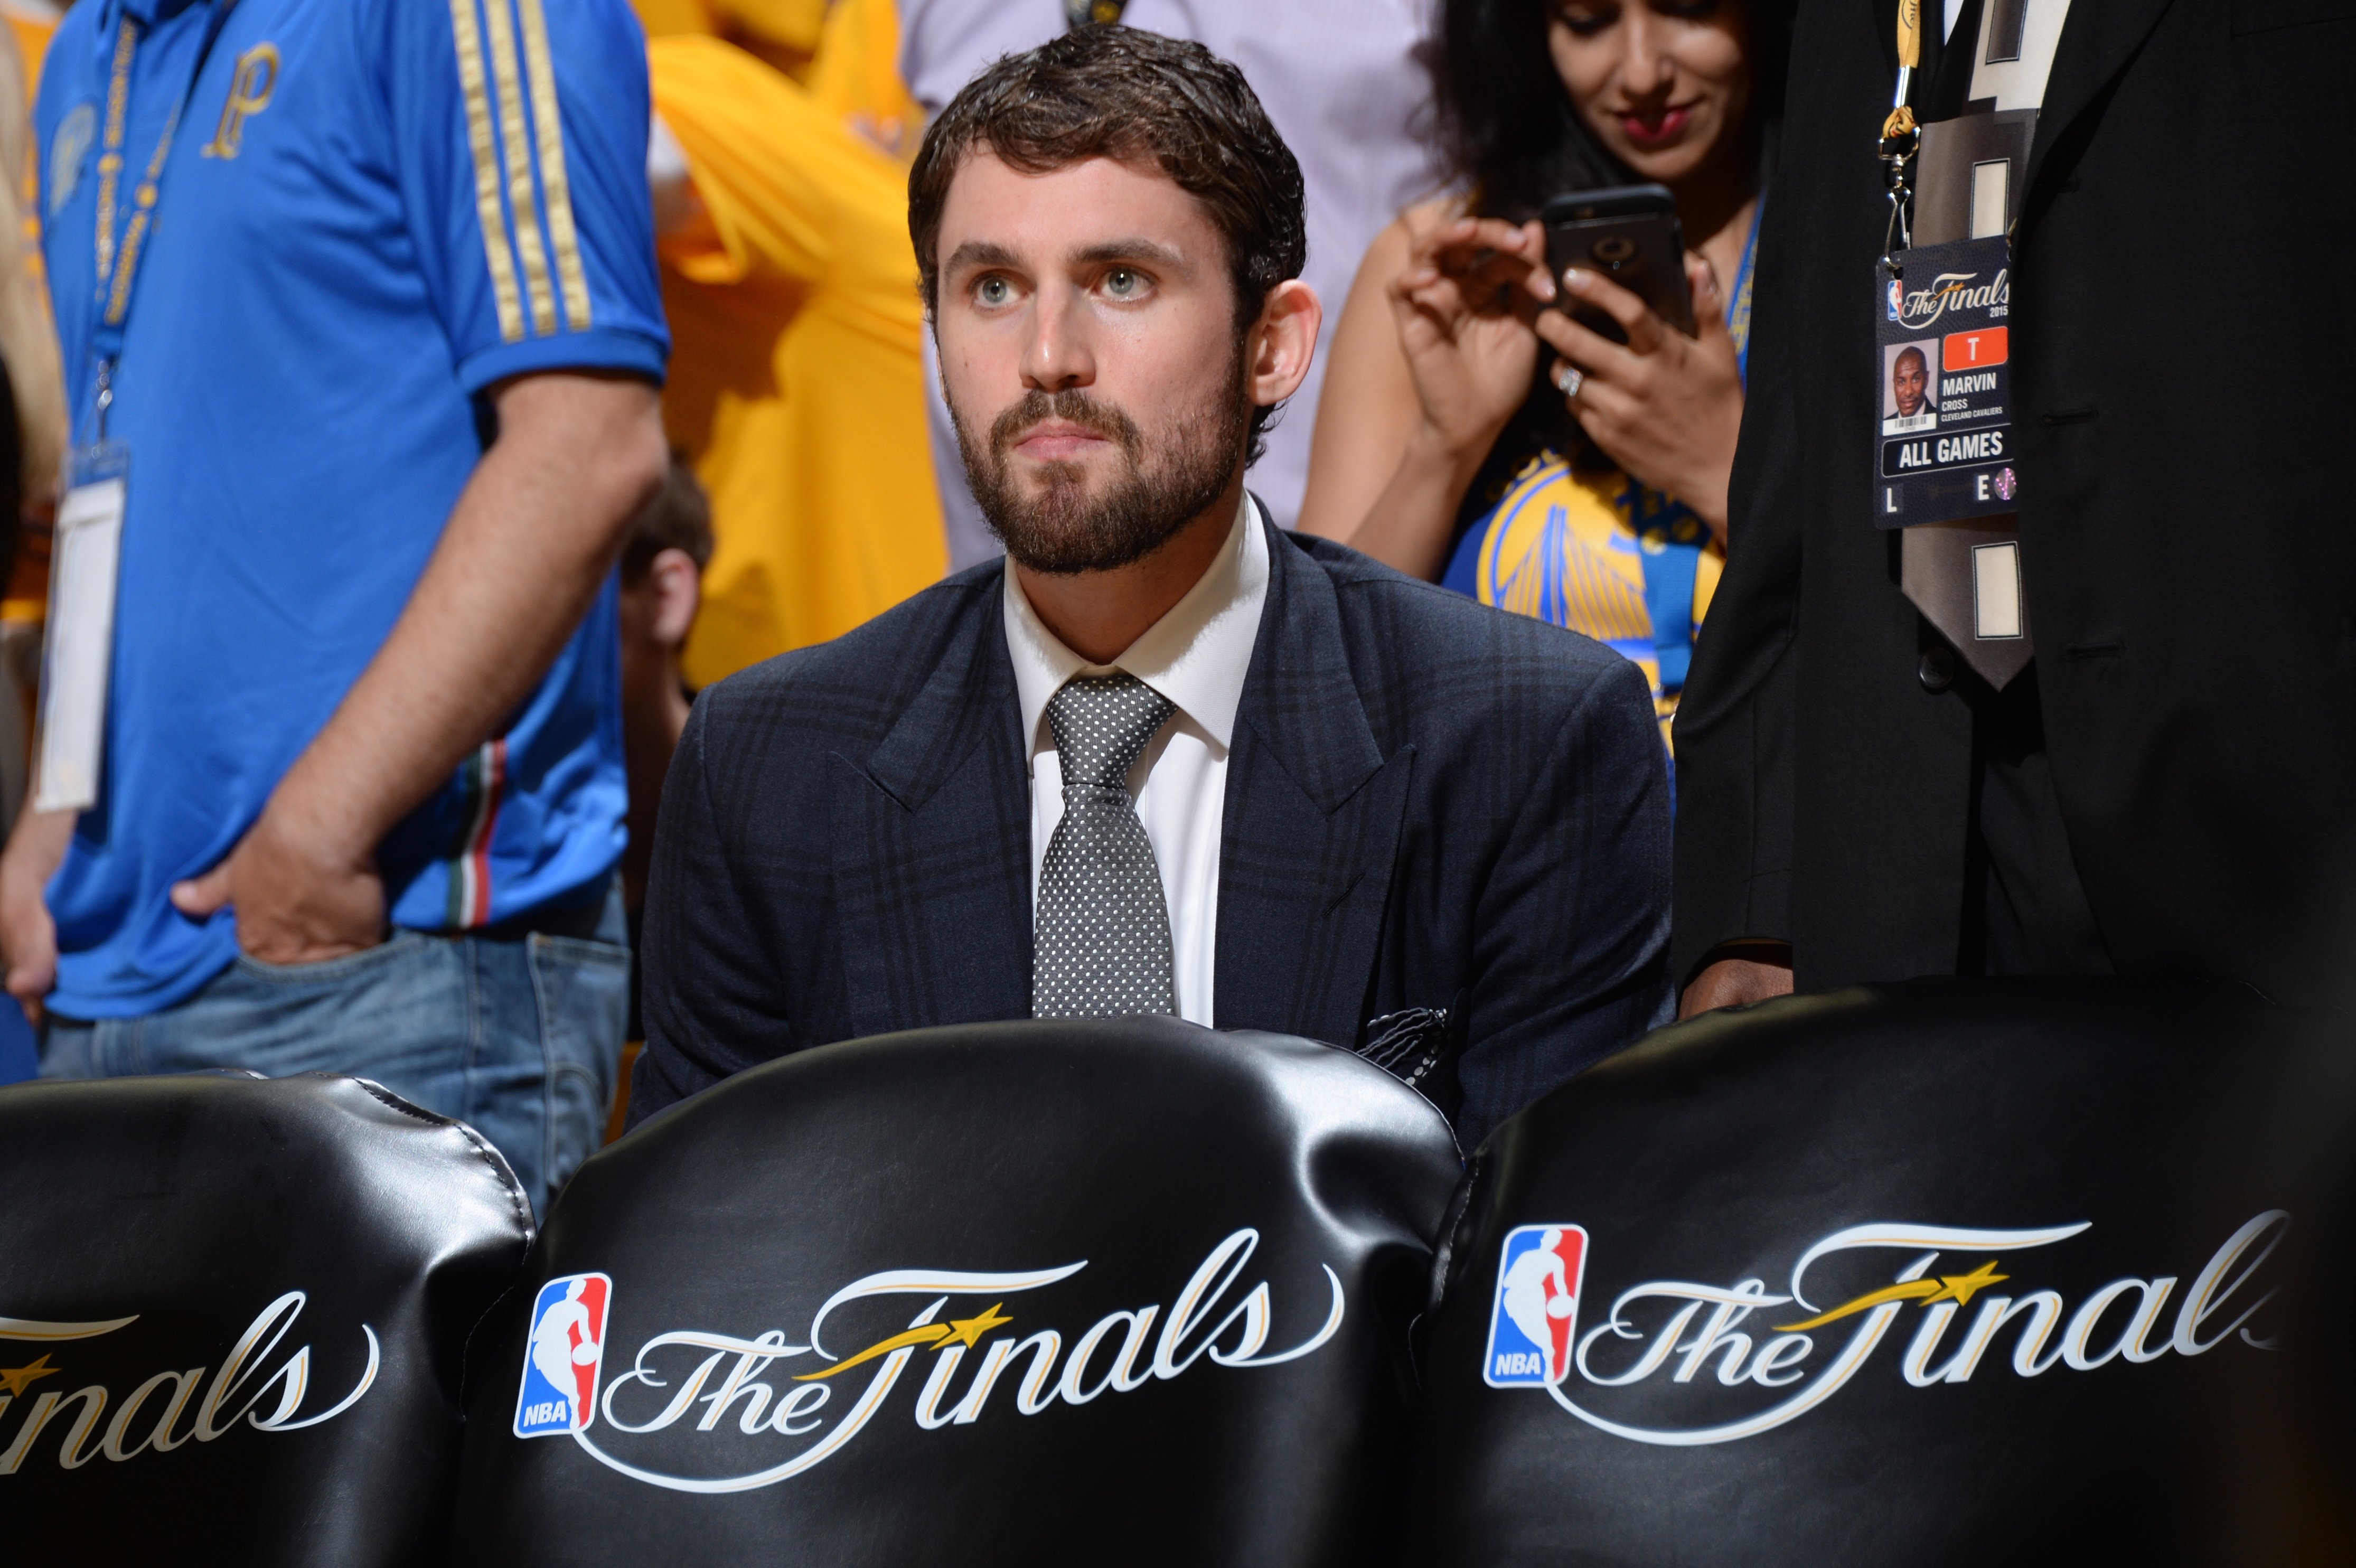 OAKLAND, CA - JUNE 4: Kevin Love #0 of the Cleveland Cavaliers sits on the bench during Game One of the 2015 NBA Finals on June 4, 2015 at Oracle Arena in Oakland, California. (Photo by Andrew D. Bernstein/NBAE via Getty Images)